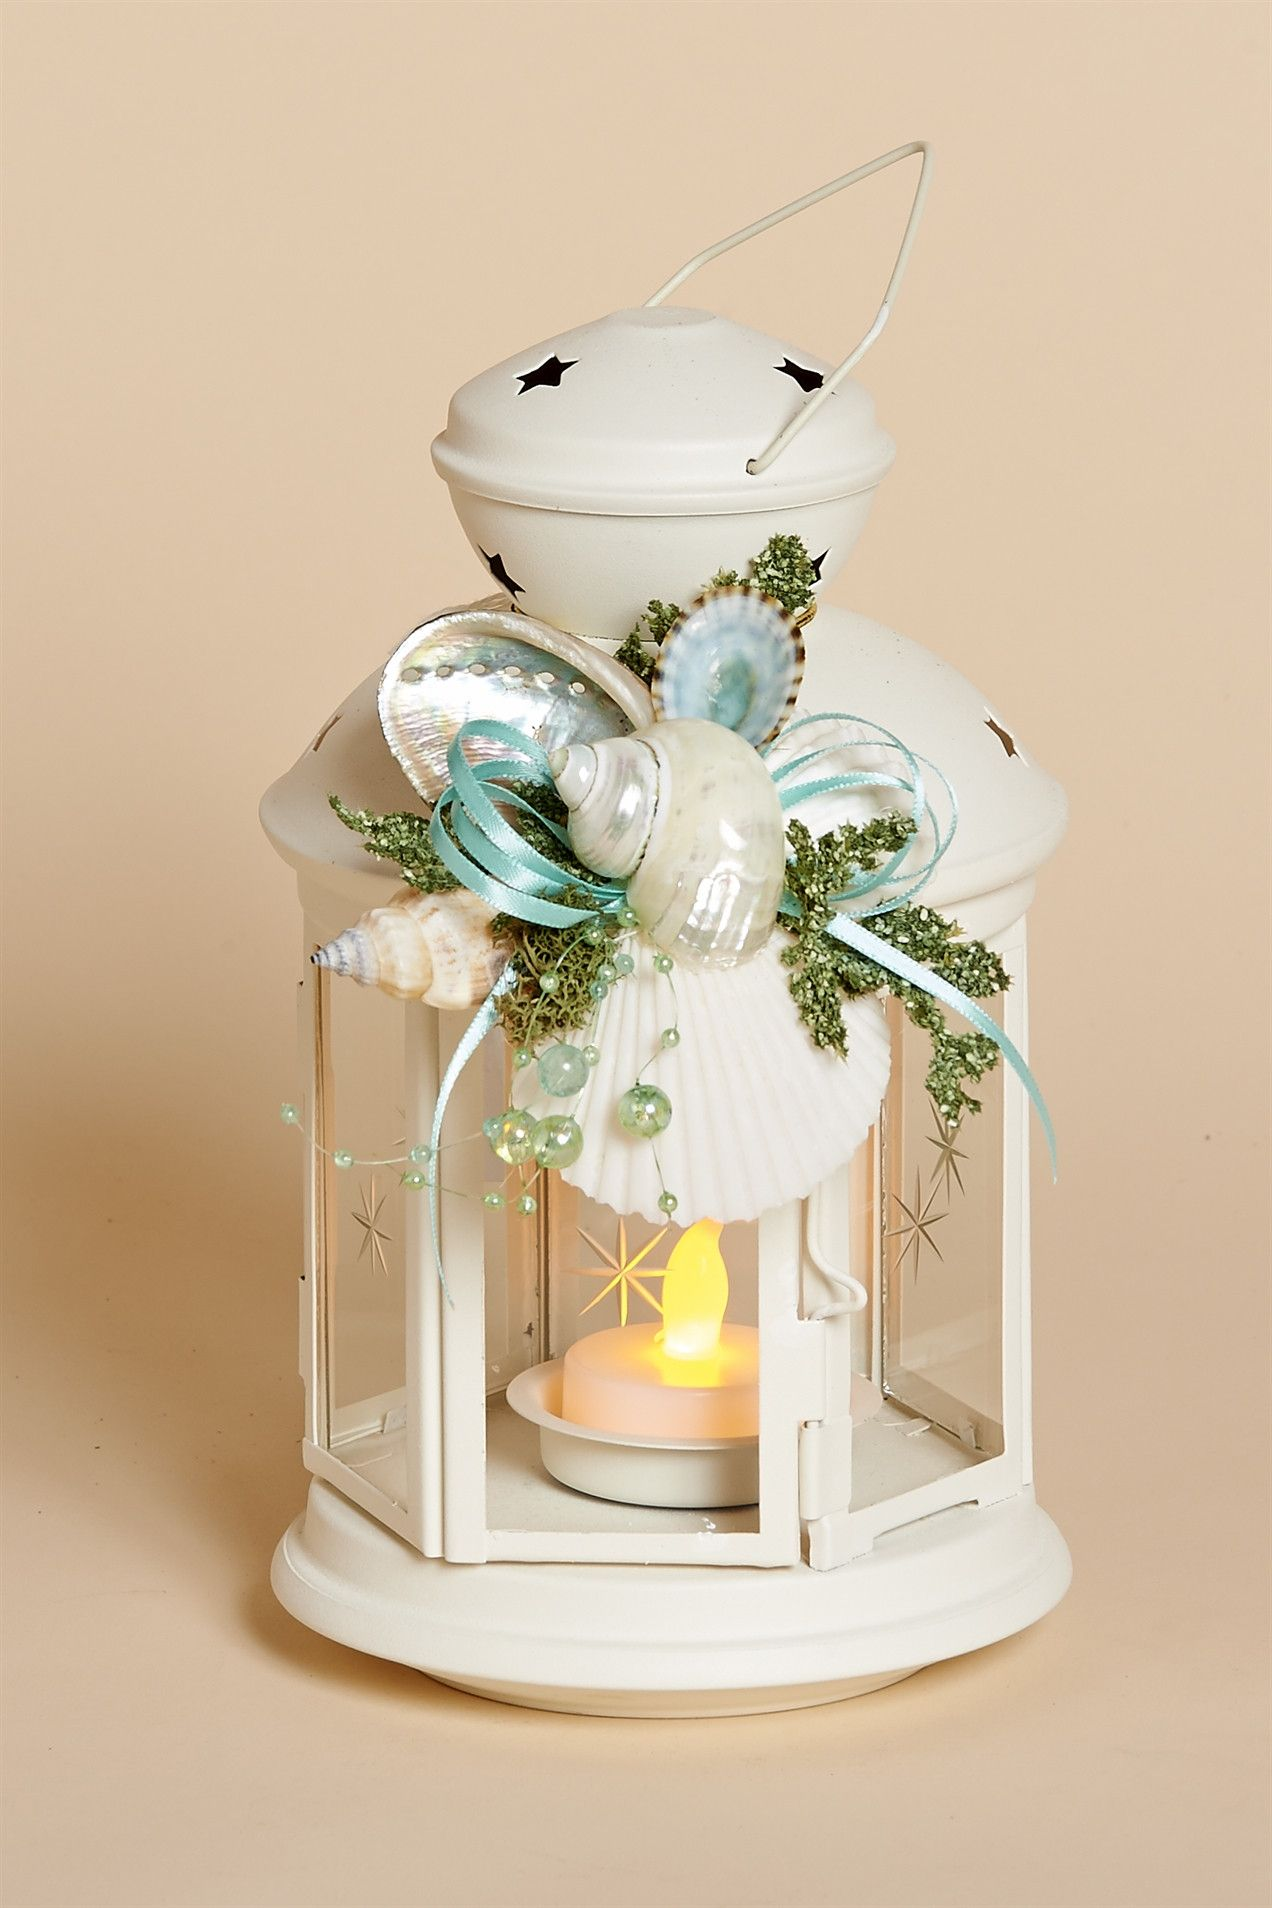 8 inch high white metal lantern with removable shell for Ikea tea light battery